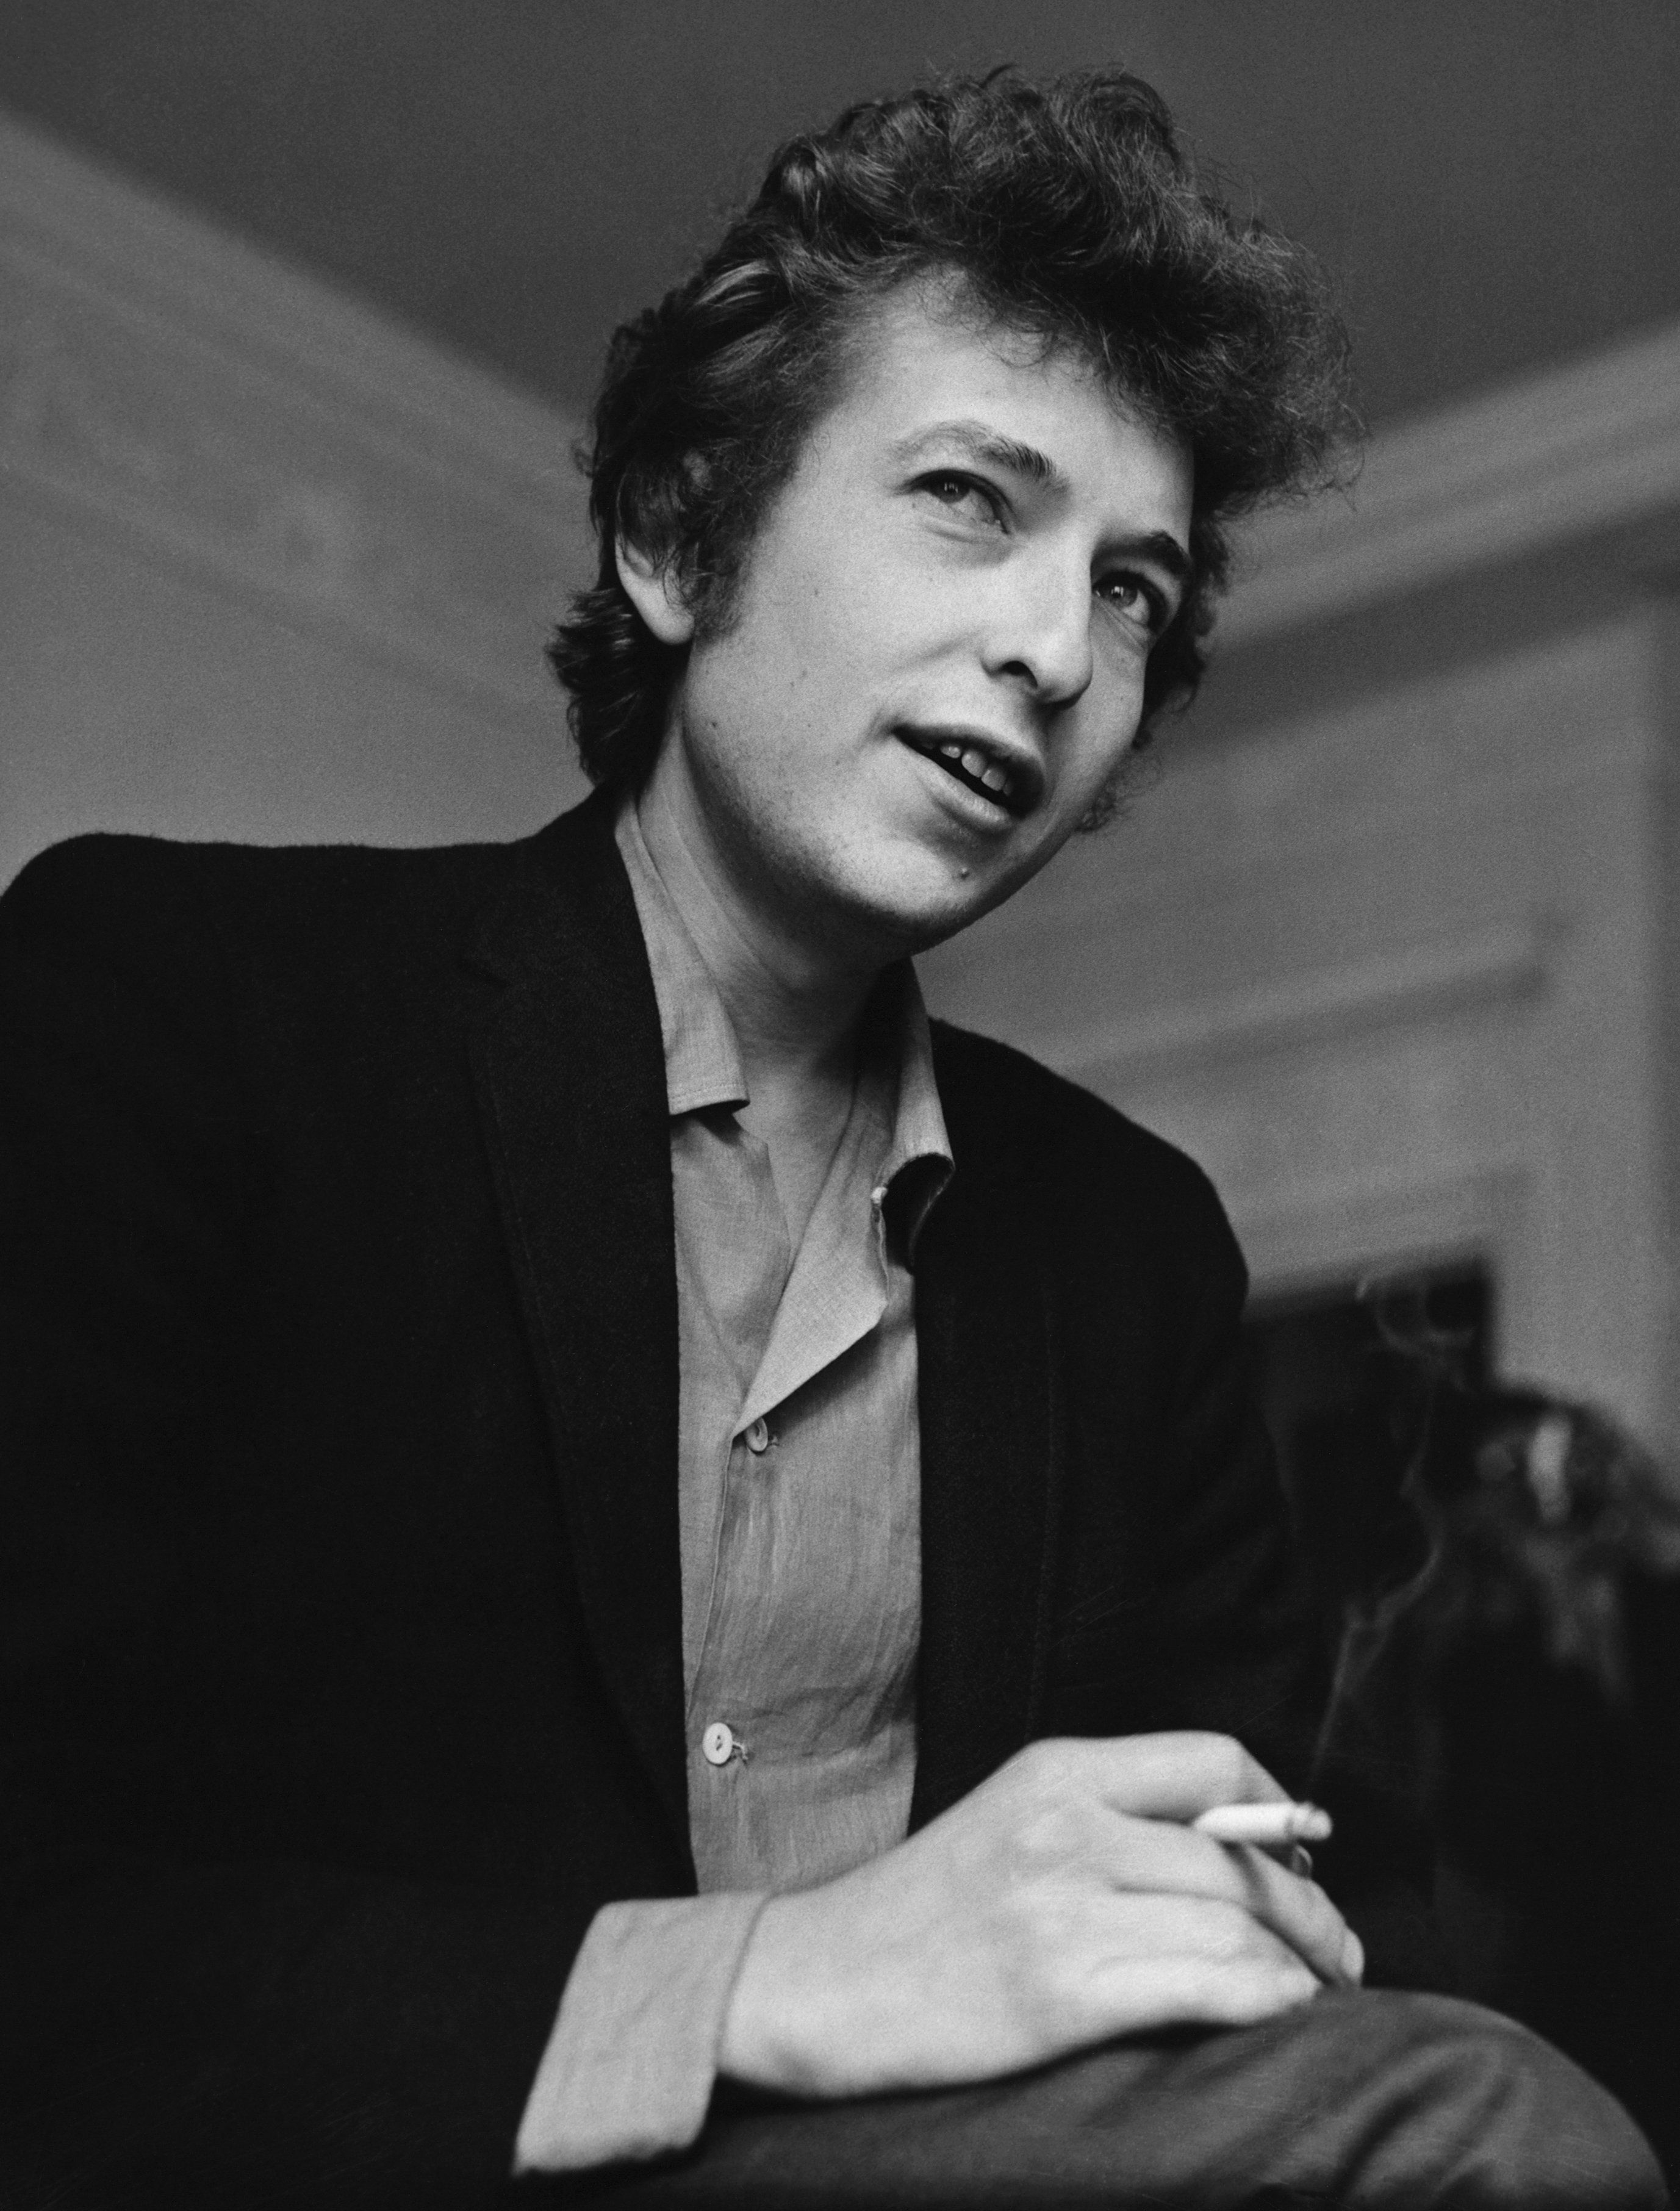 Bob Dylan (b. 1941) the cult American singer and songwriter, best known for his folk protest music during the 1960's. (Photo by © Hulton-Deutsch Collection/CORBIS/Corbis via Getty Images)